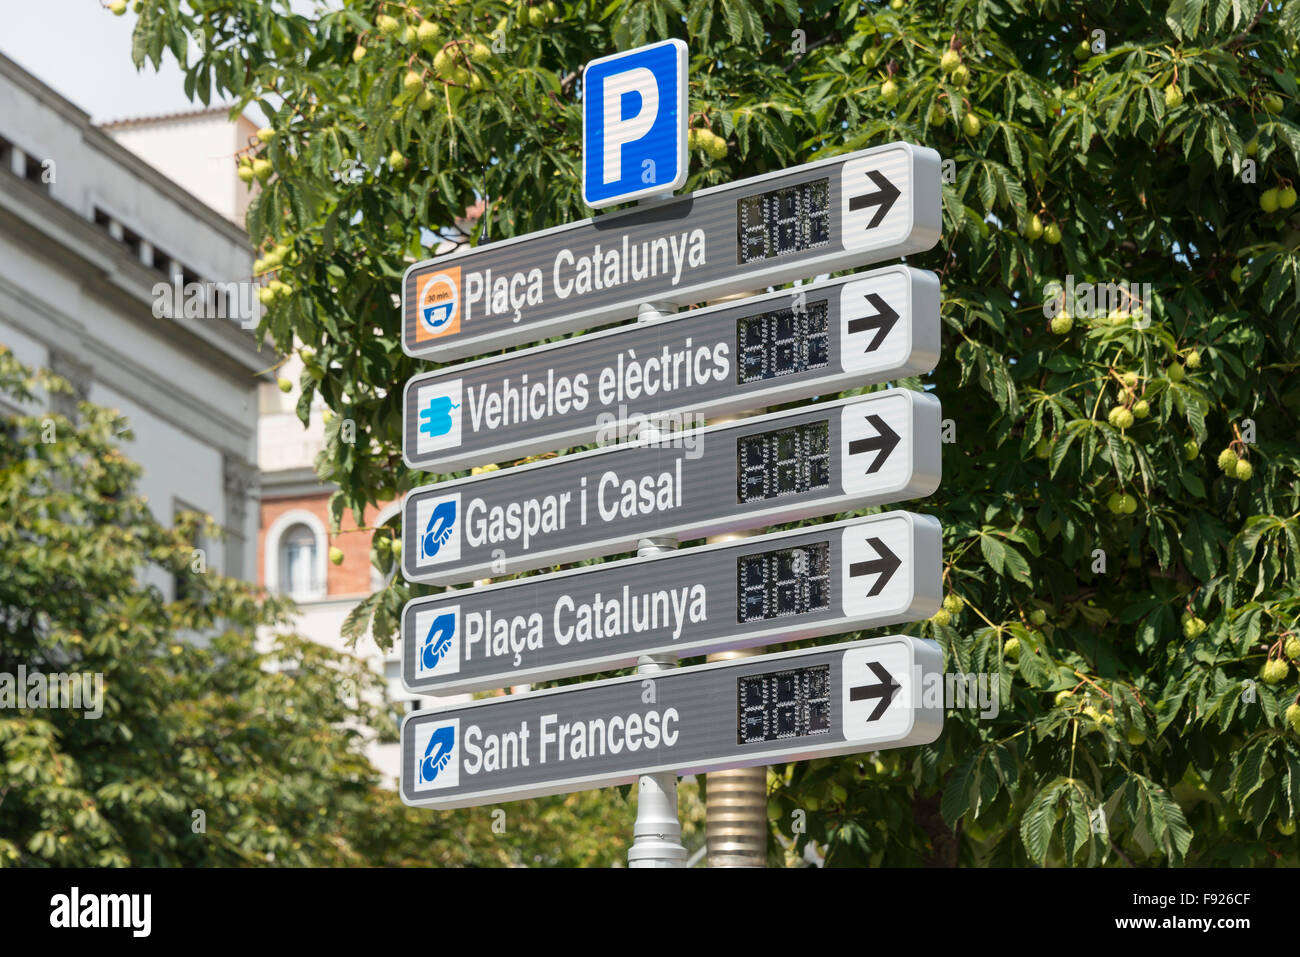 Parking direction signs, Girona (Gerona), Province of Girona, Catalonia, Spain Stock Photo